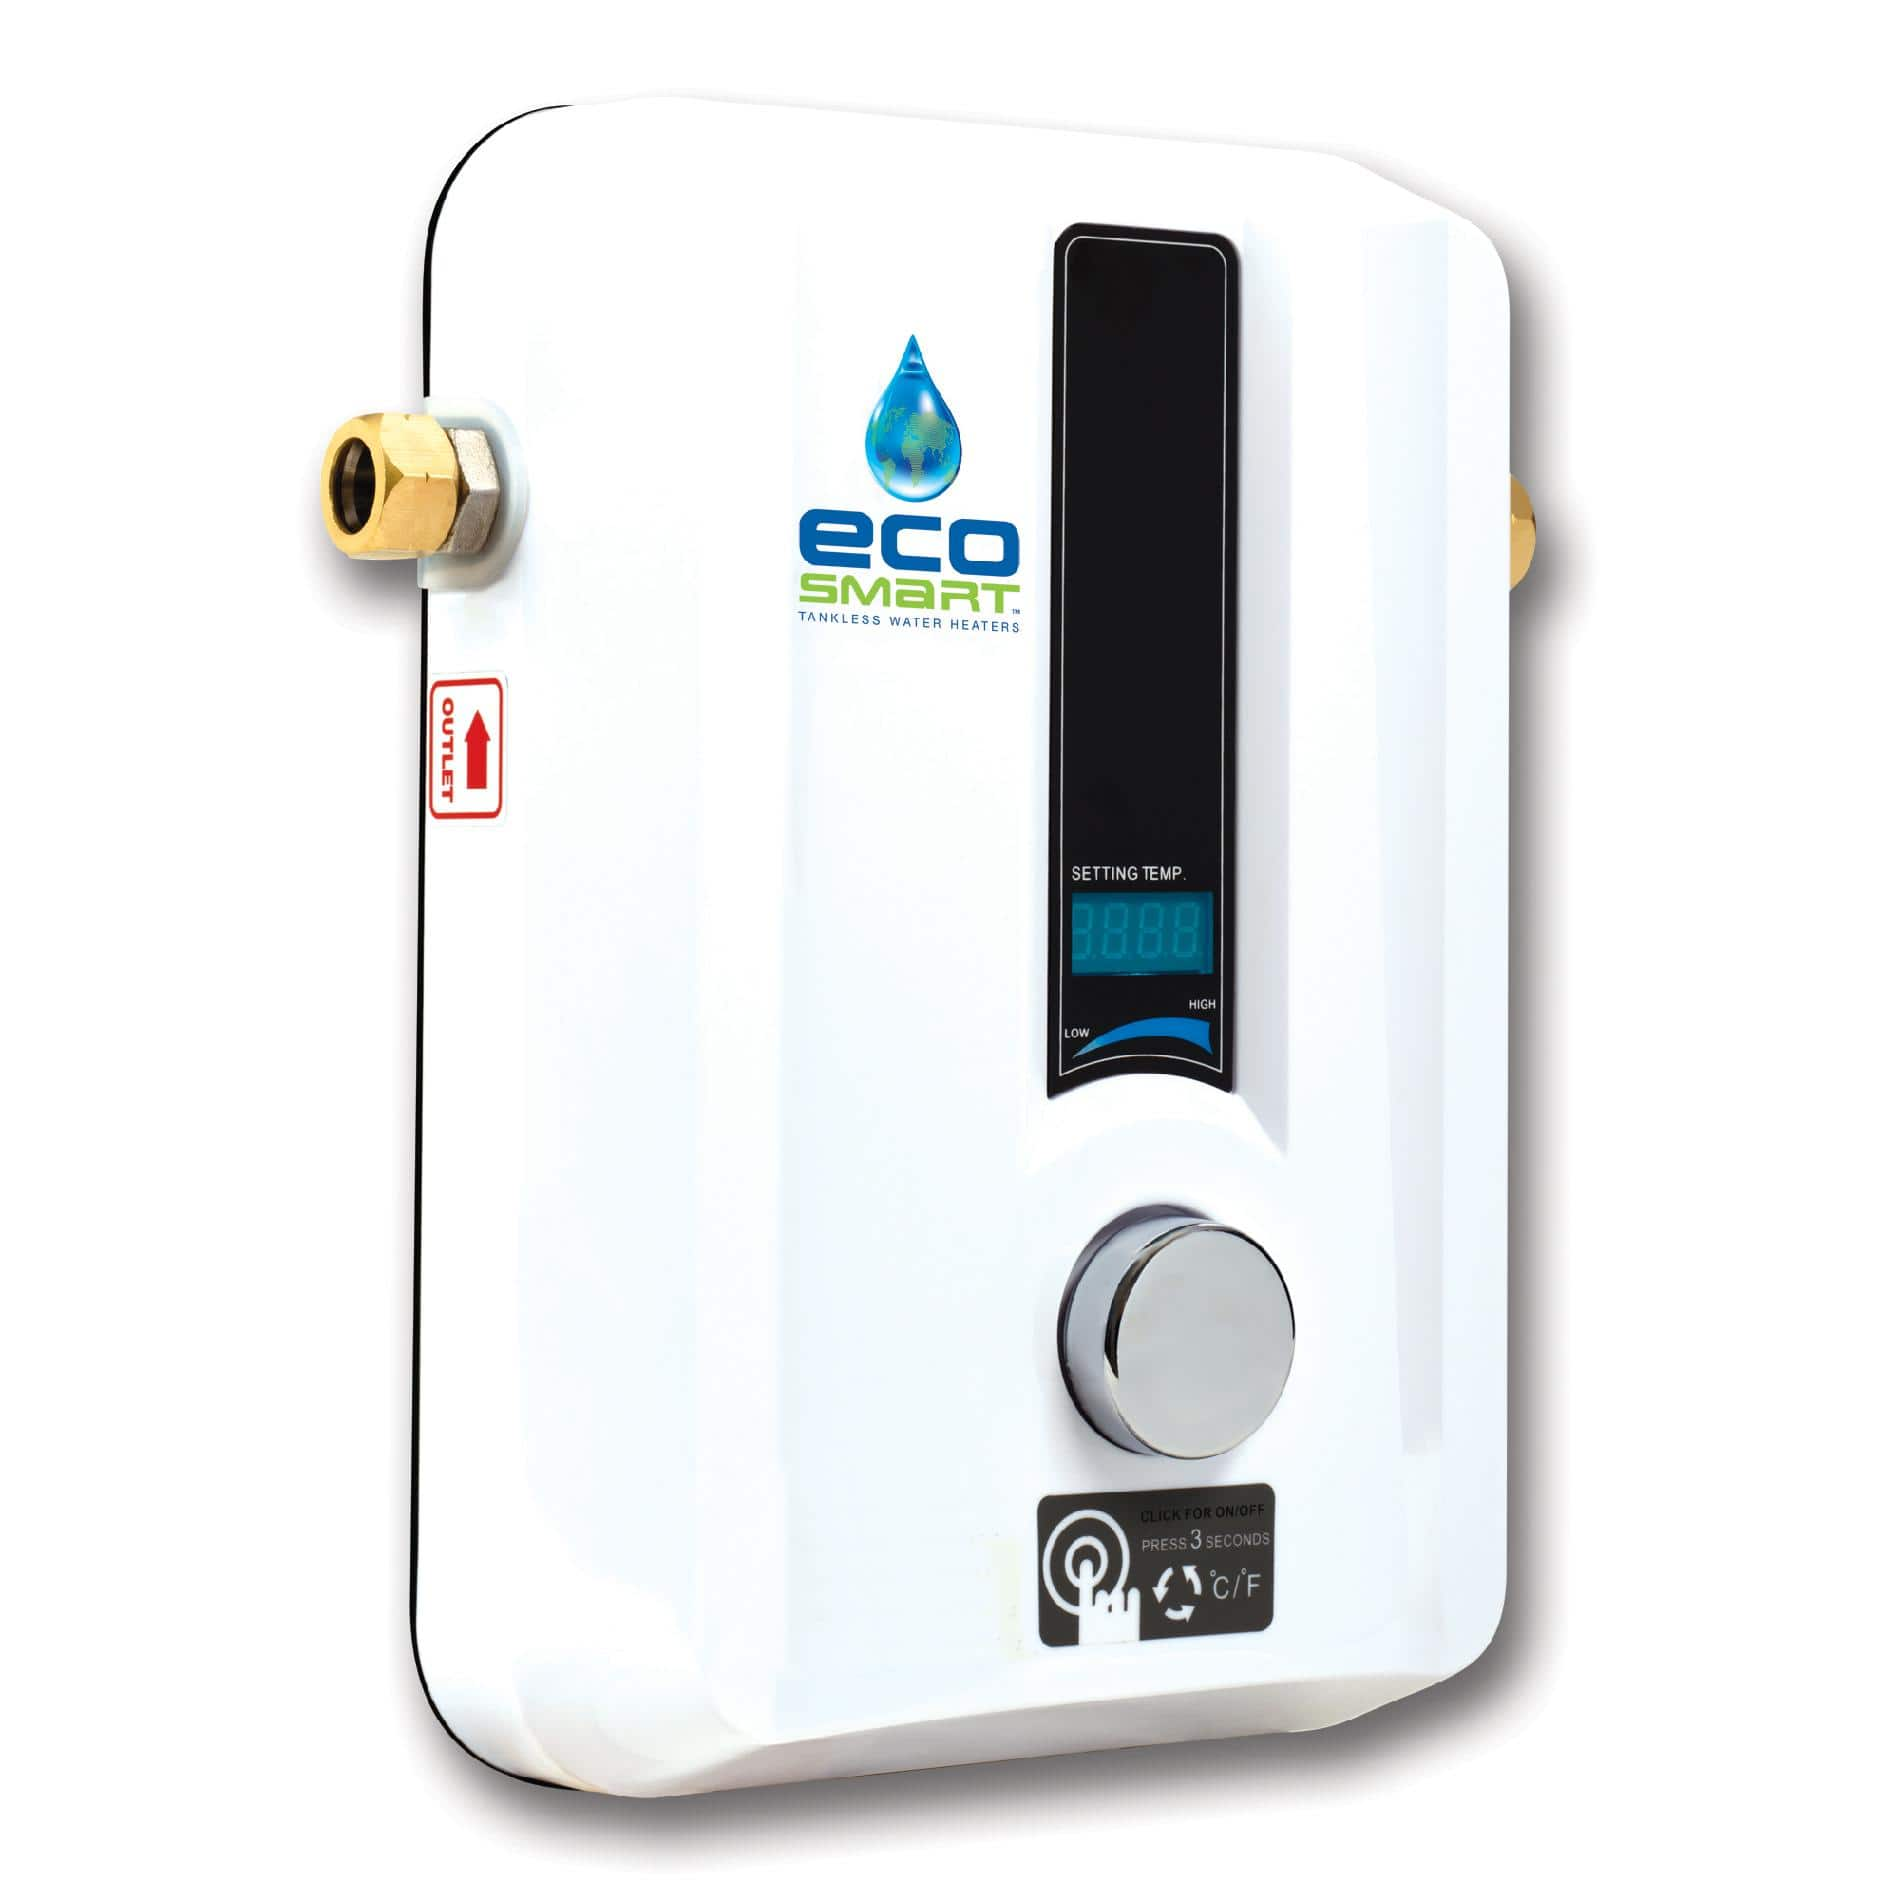 EcoSmart ECO 11 Electric Tankless Water Heater, 13KW @ 240 Volts $152.45 or ECO 27 Electric Tankless Water Heater, 27 KW 240 Volts $334.85 Shipped Free With Prime @ Amazon